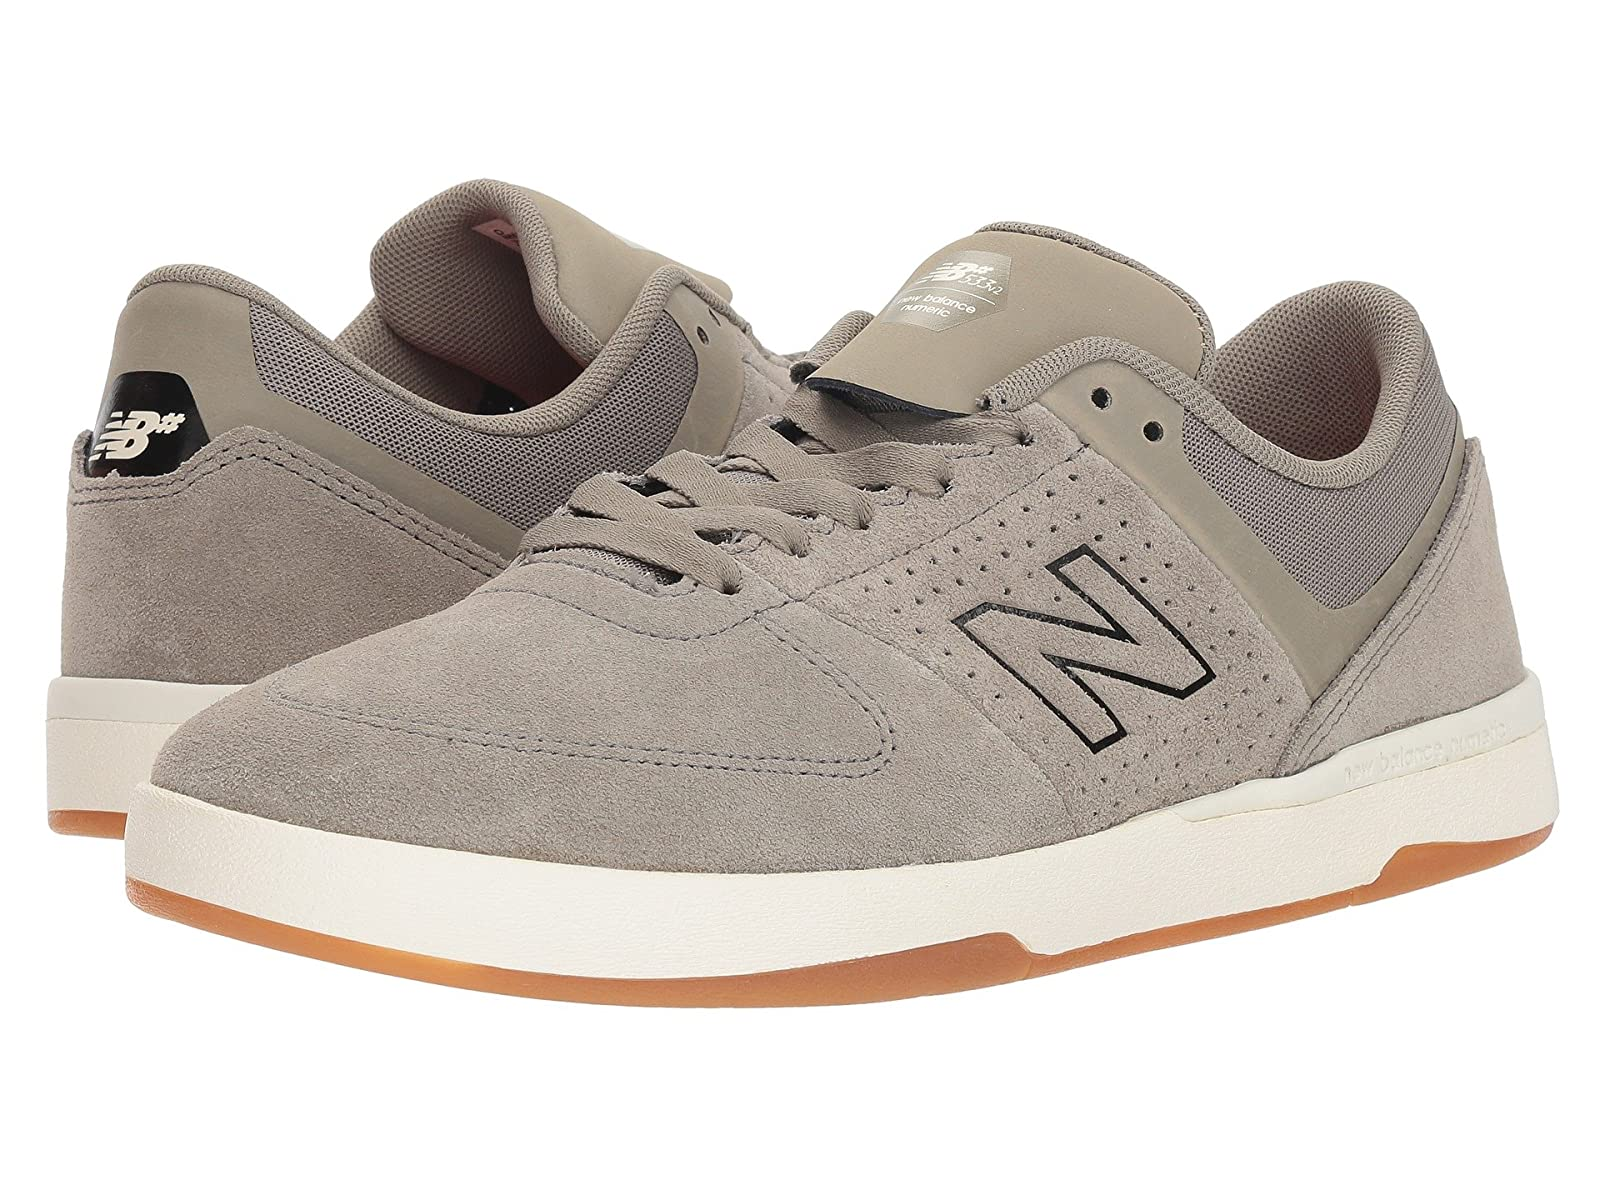 New Balance Numeric 533v2Atmospheric grades have affordable shoes